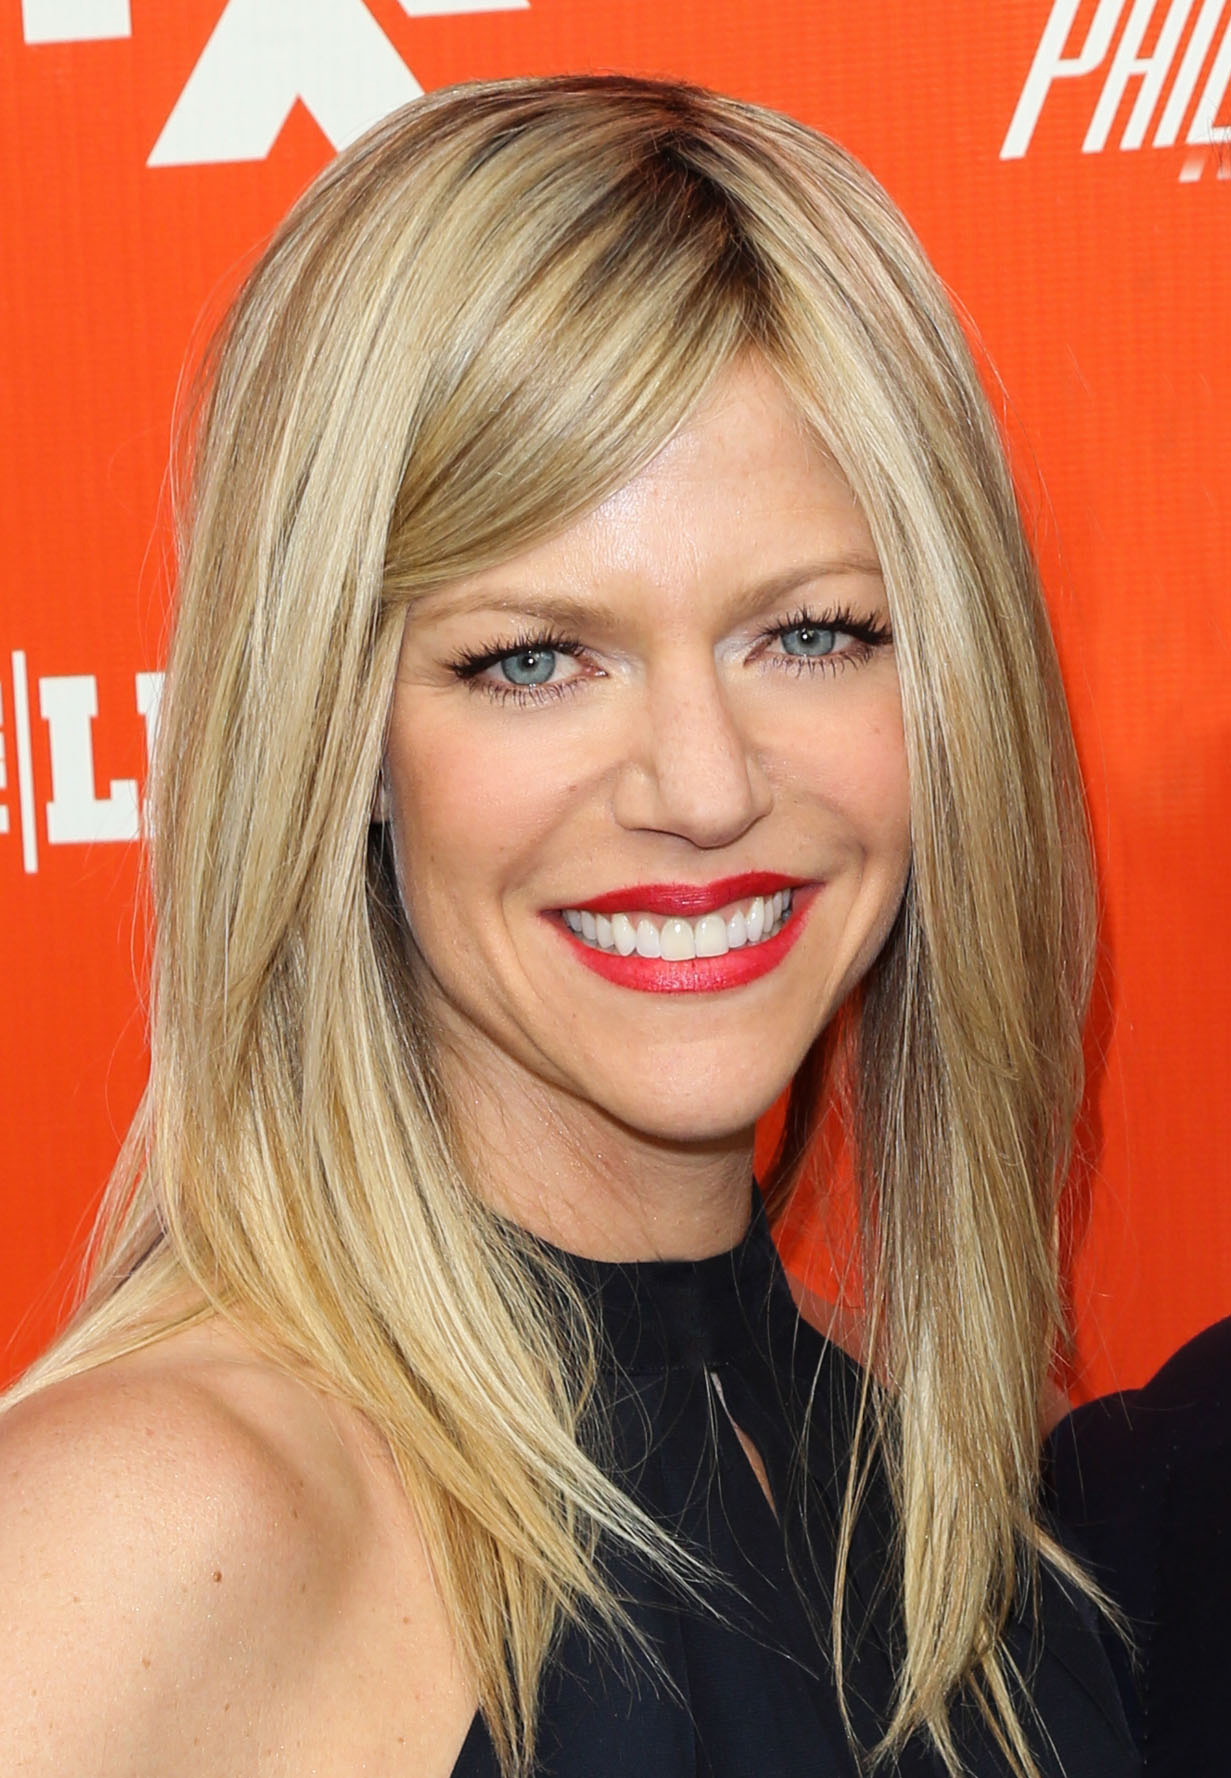 Kaitlin Olson naked (79 foto and video), Topless, Hot, Twitter, braless 2017